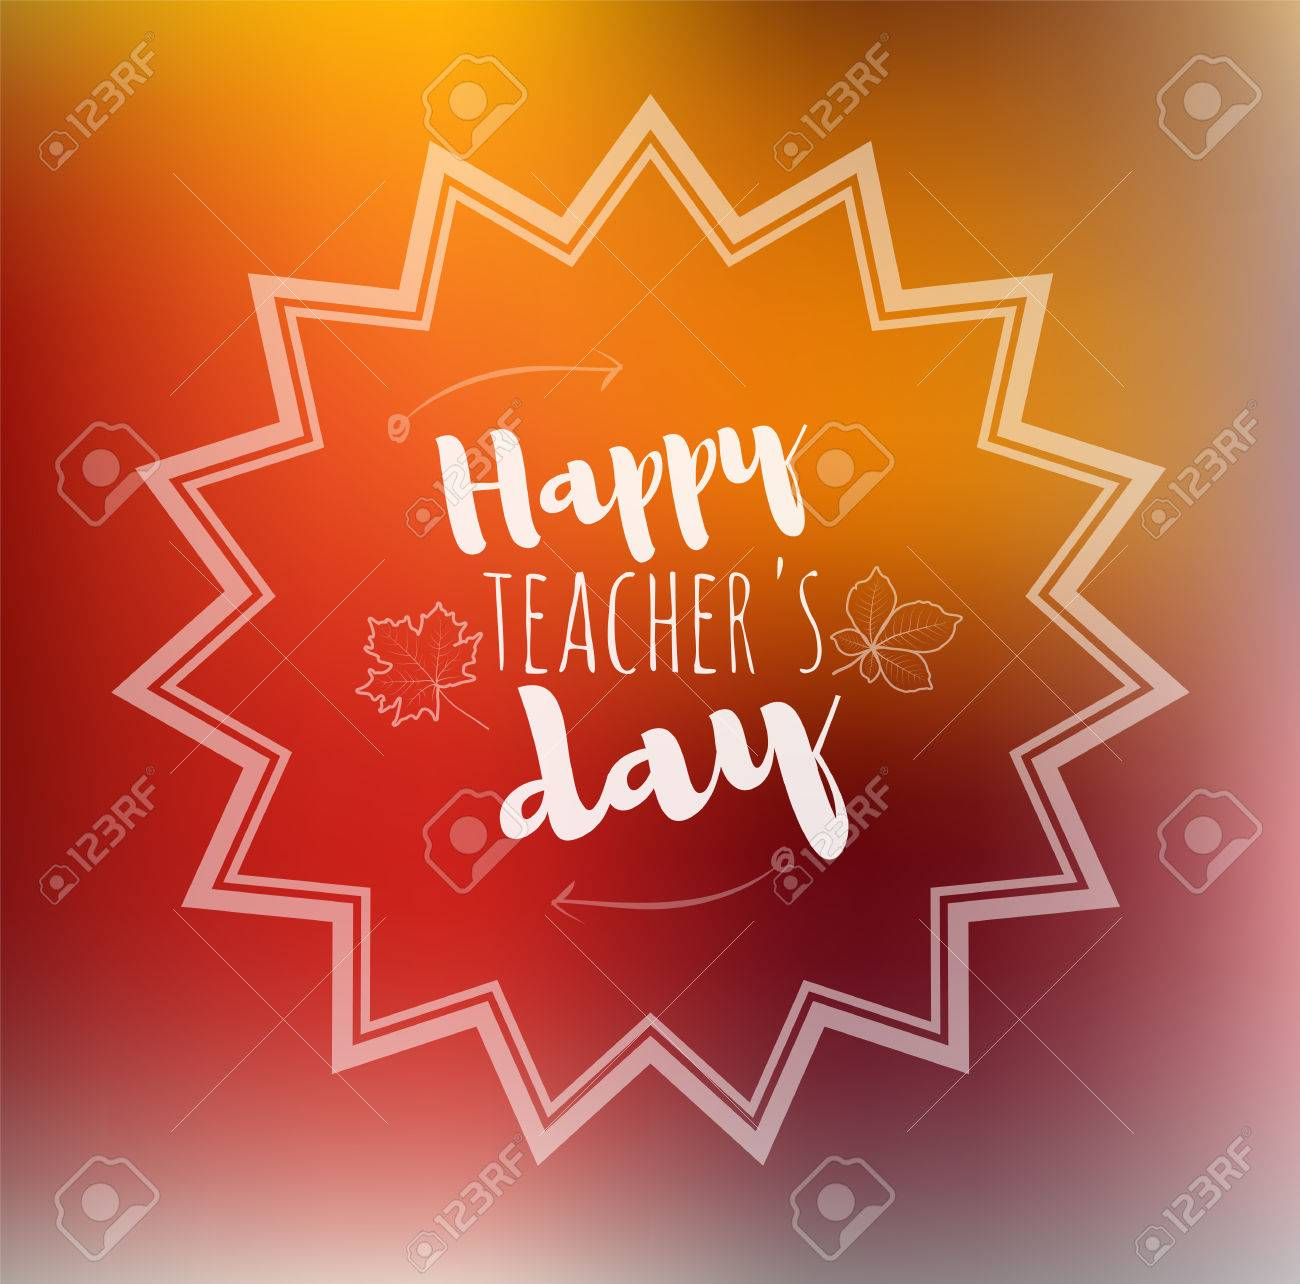 Greeting card happy teachers day abstract border orange background greeting card happy teachers day abstract border orange background with maple leaf written chalk m4hsunfo